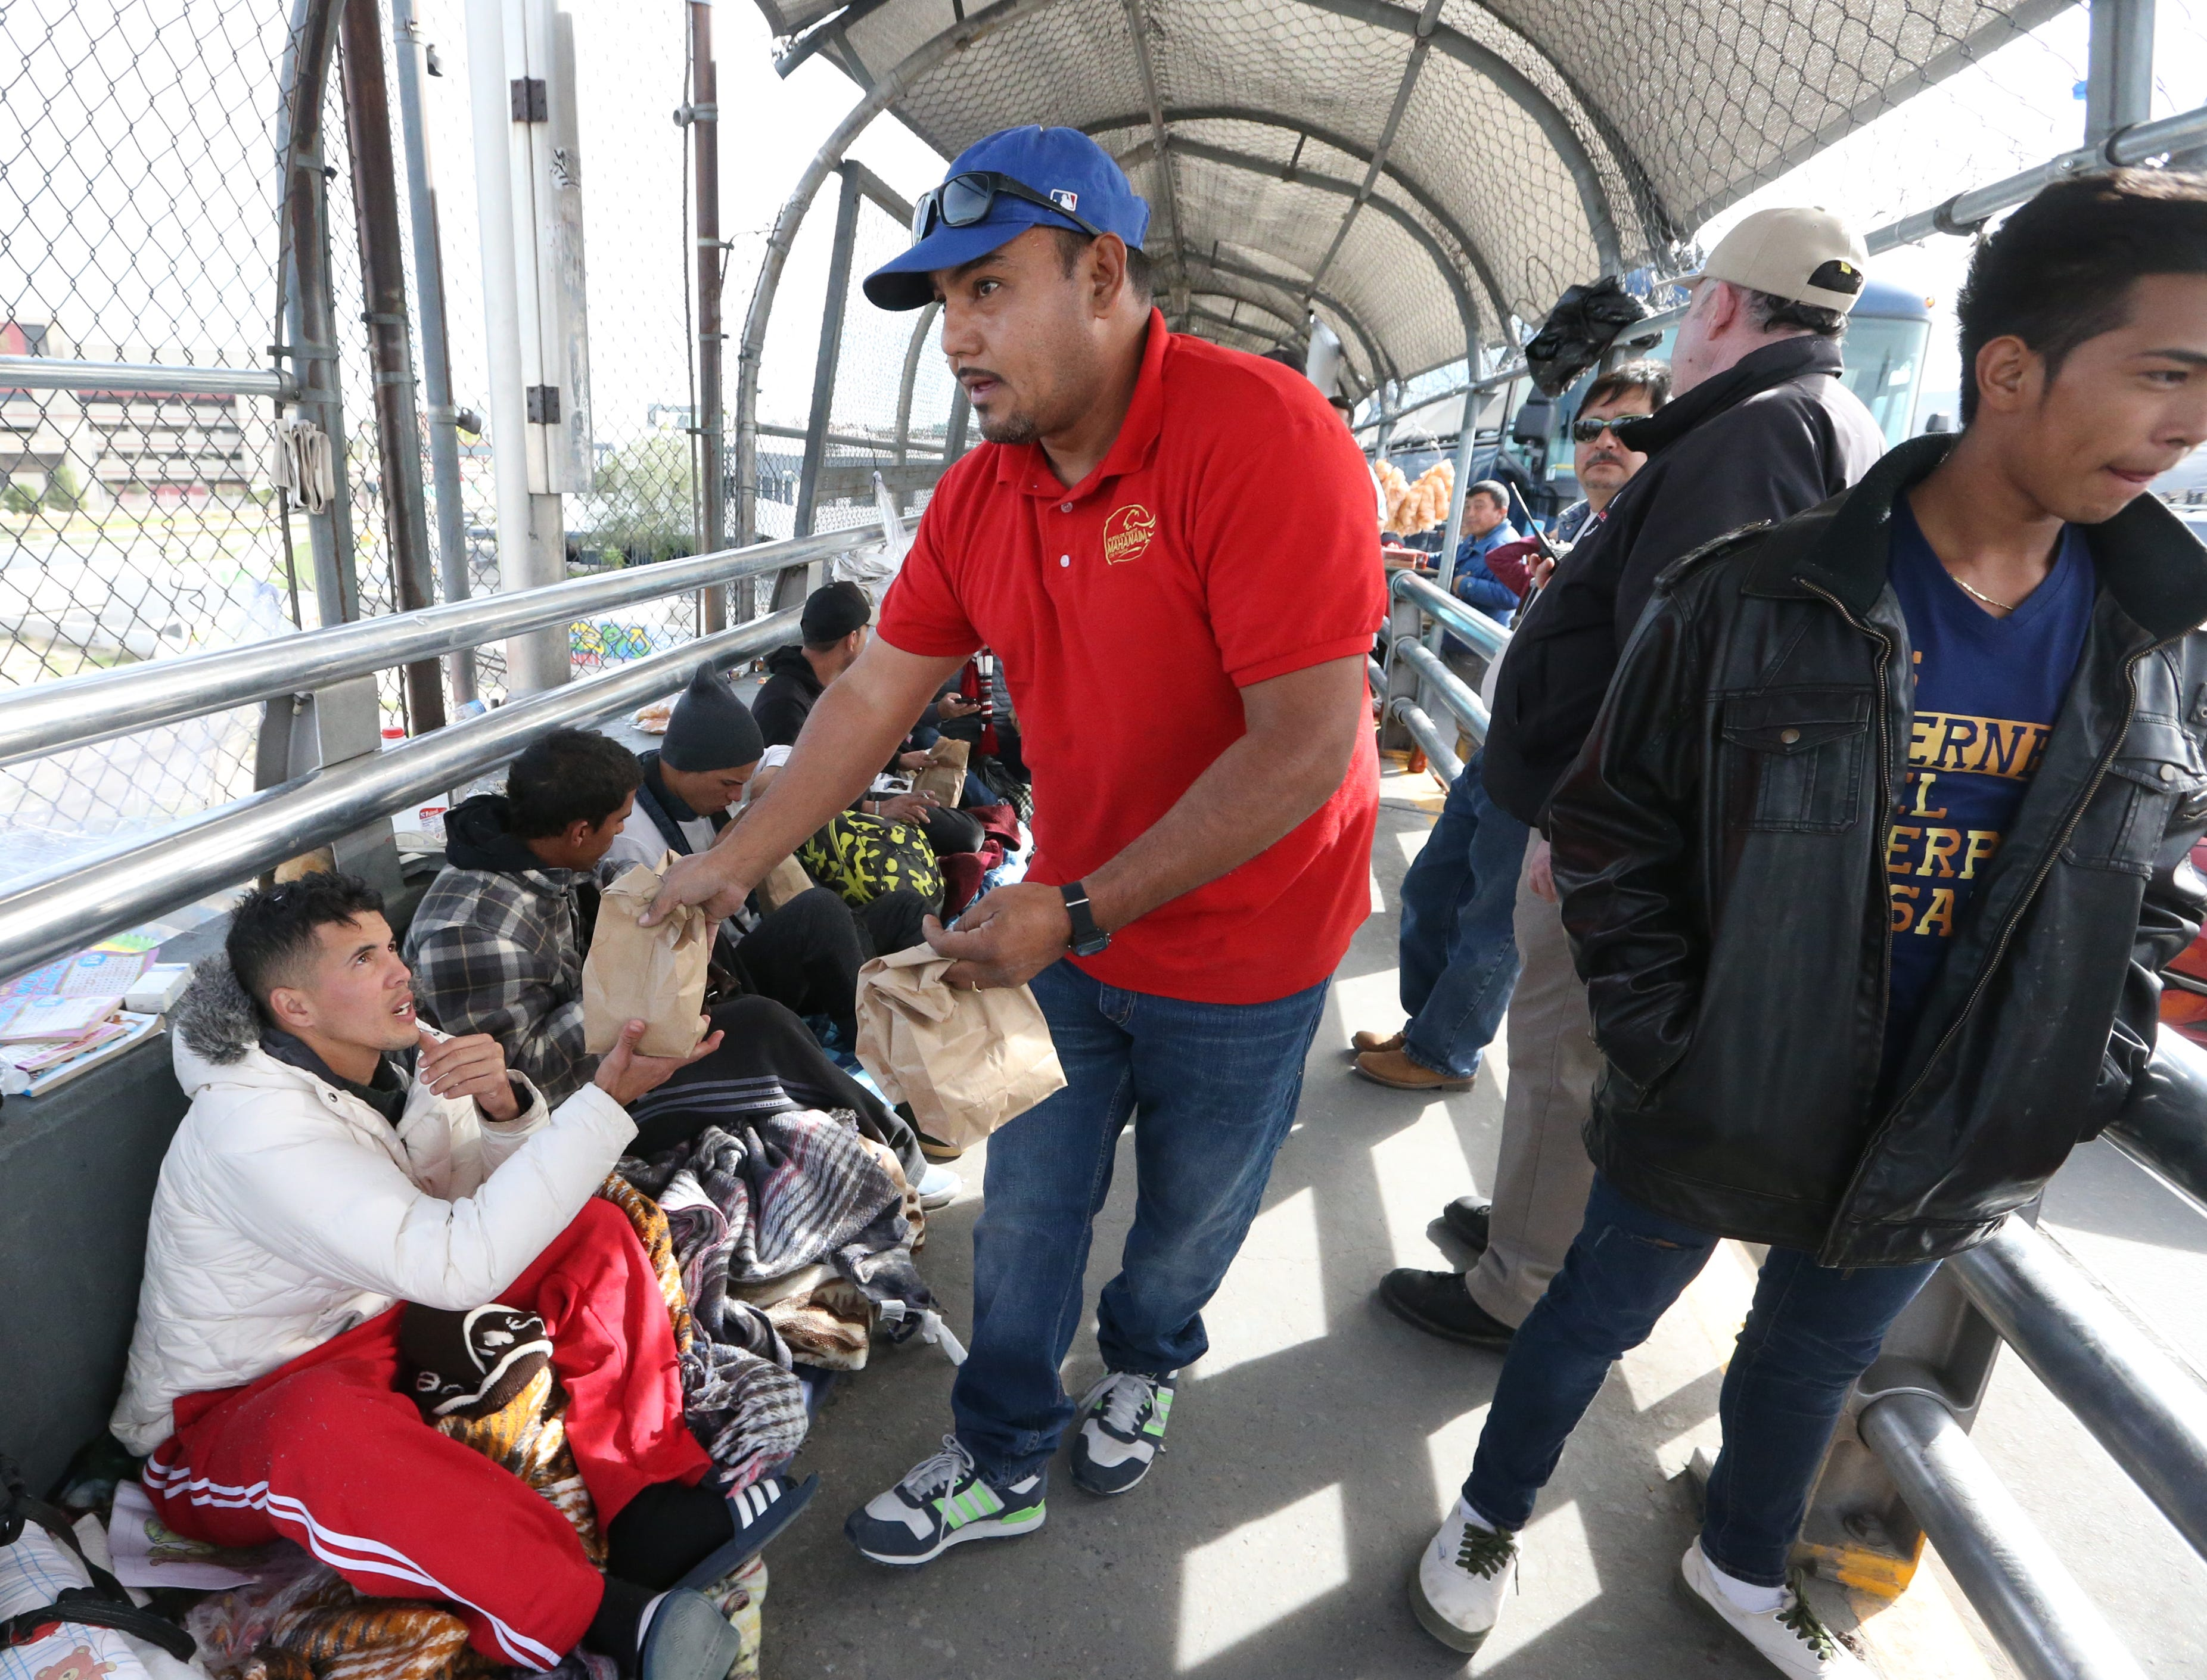 Hugo Enrique Lujan, center, of Mahanaim Christian church in Juarez hands out sack lunches to migrants waiting to enter the U.S. atop the Paso Del Norte international bridge Thursday afternoon. Just over 100 immigrants from various countries, including Mexico, Central America and Cuba were camped out at the bridge. U.S. immigration officials were allowing small groups at a time to enter.